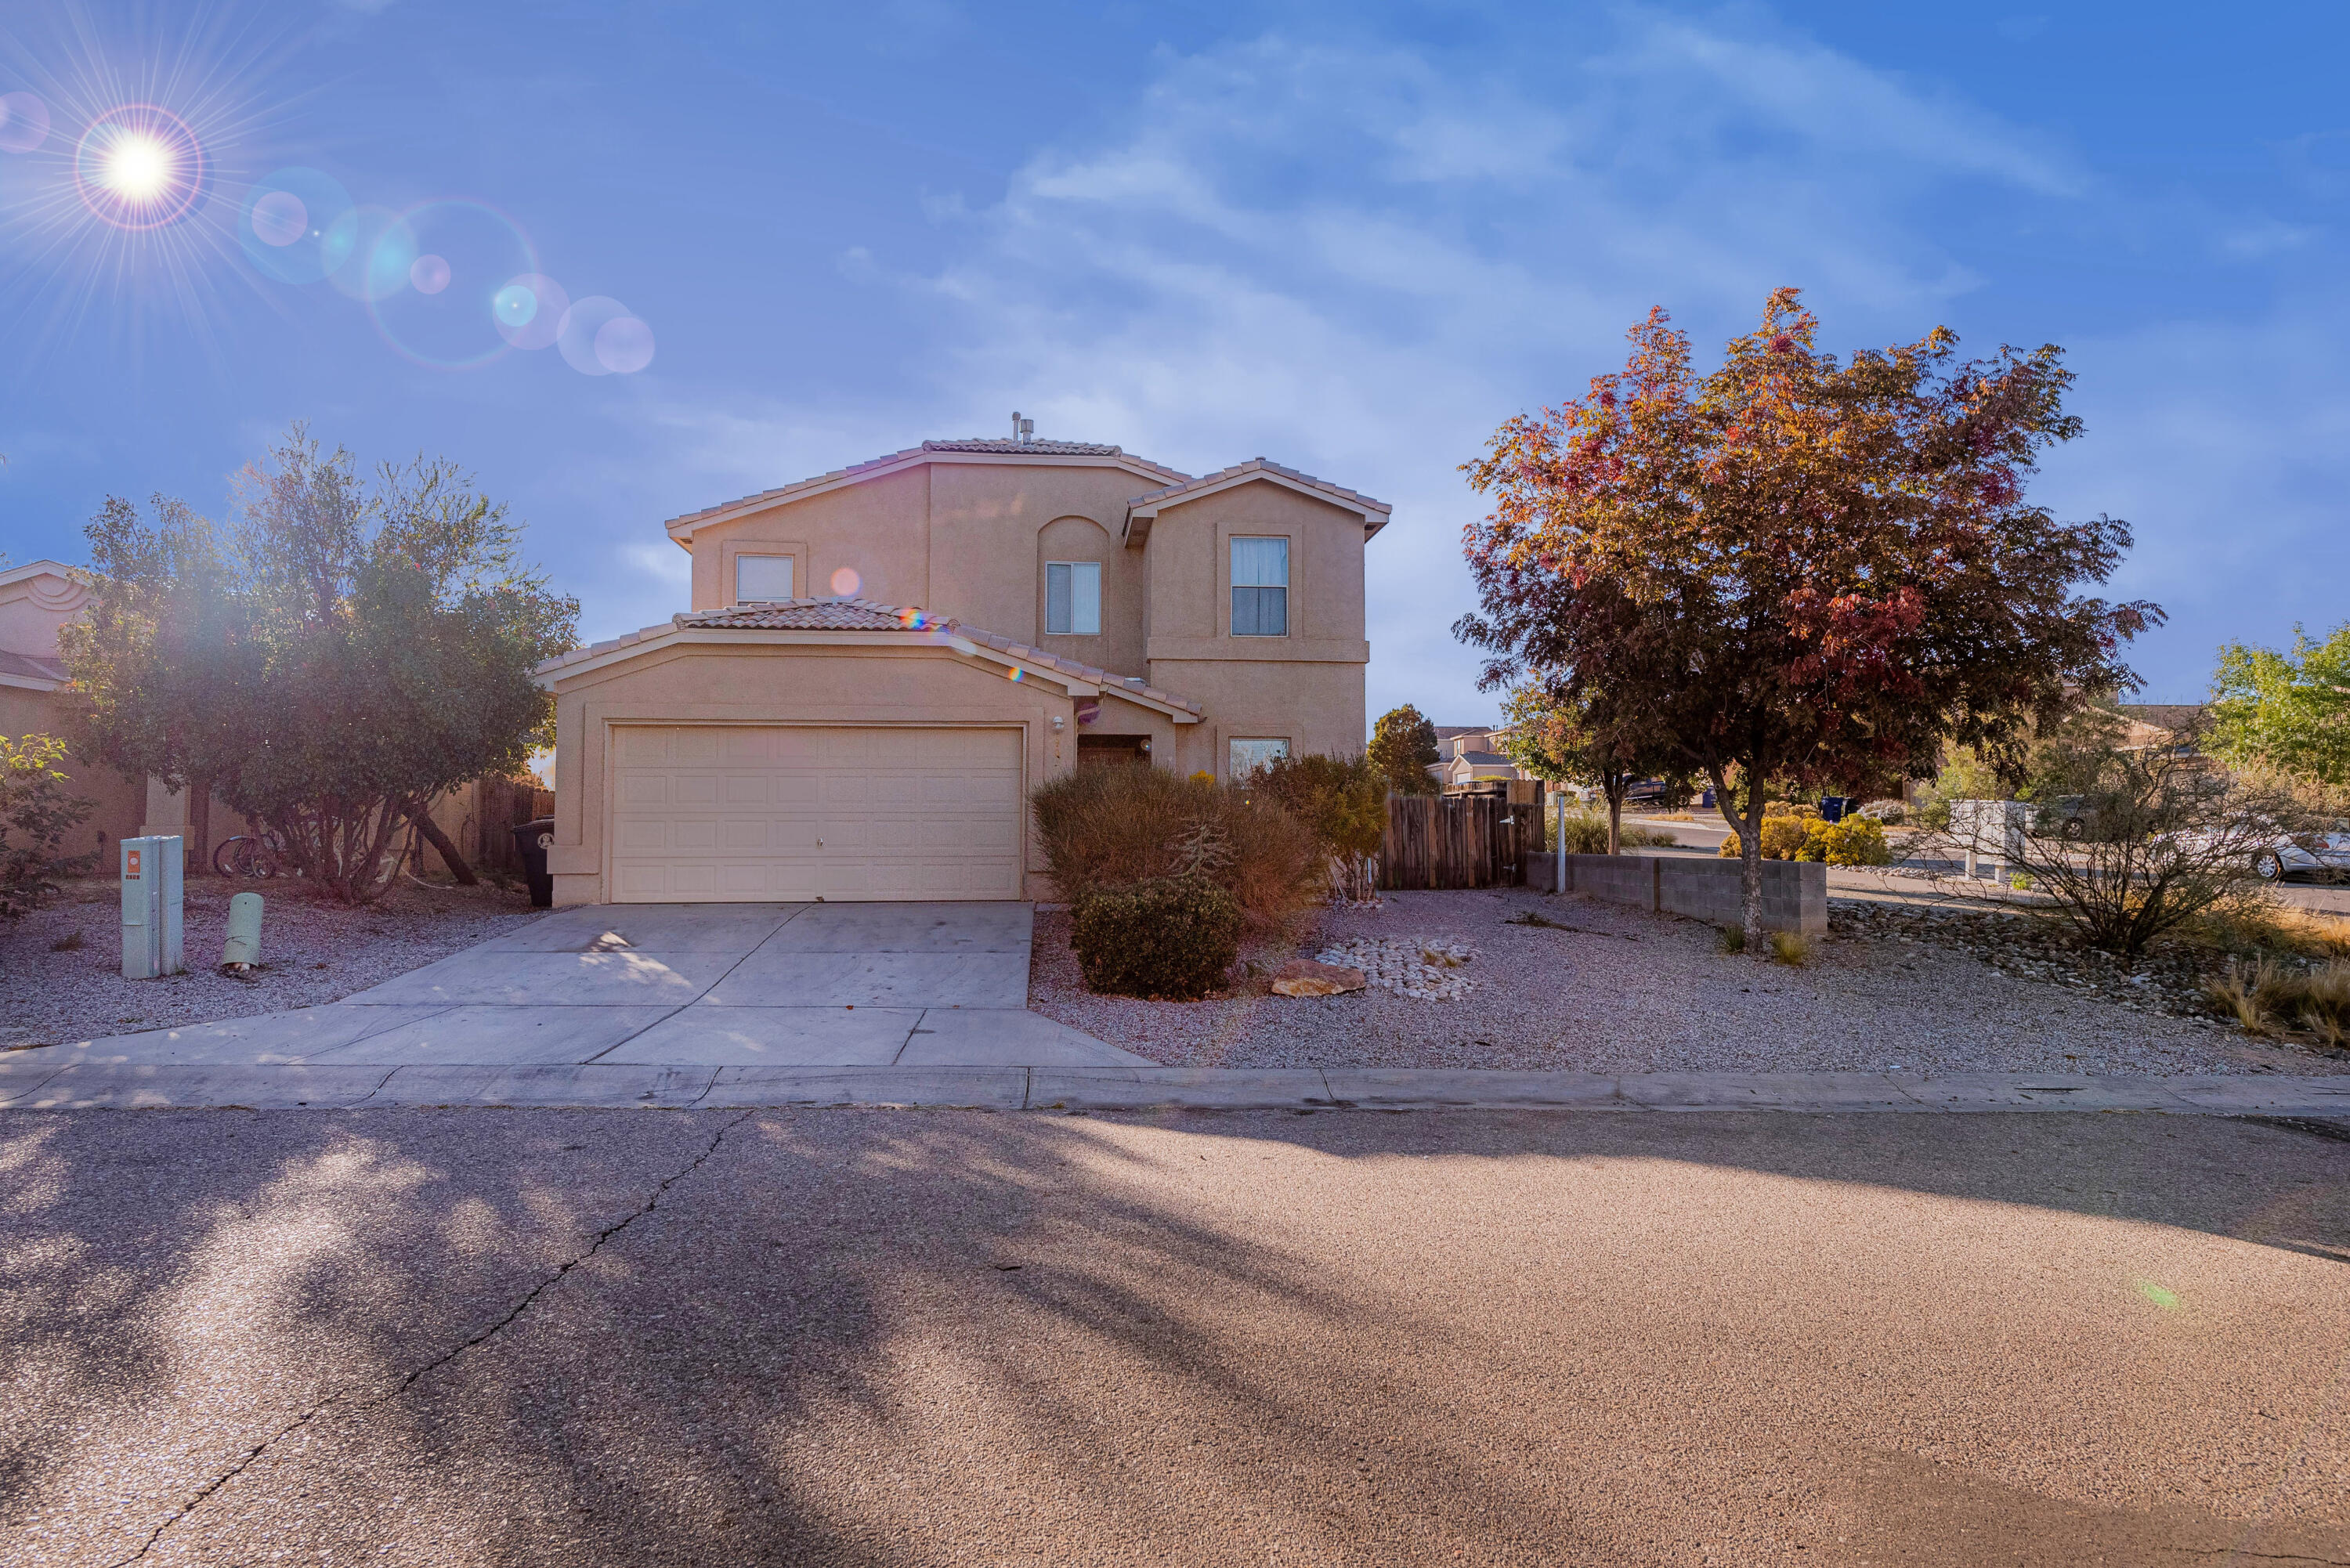 Beautiful house on a corner lot with back yard access features 4 bedrooms (one of them downstairs) and 3 full bathrooms. Tile throughout the house, nicely remodeled bathrooms. Backyard landscape with trees and plants. Two storages that match the house stucco. Schedule your showing now!